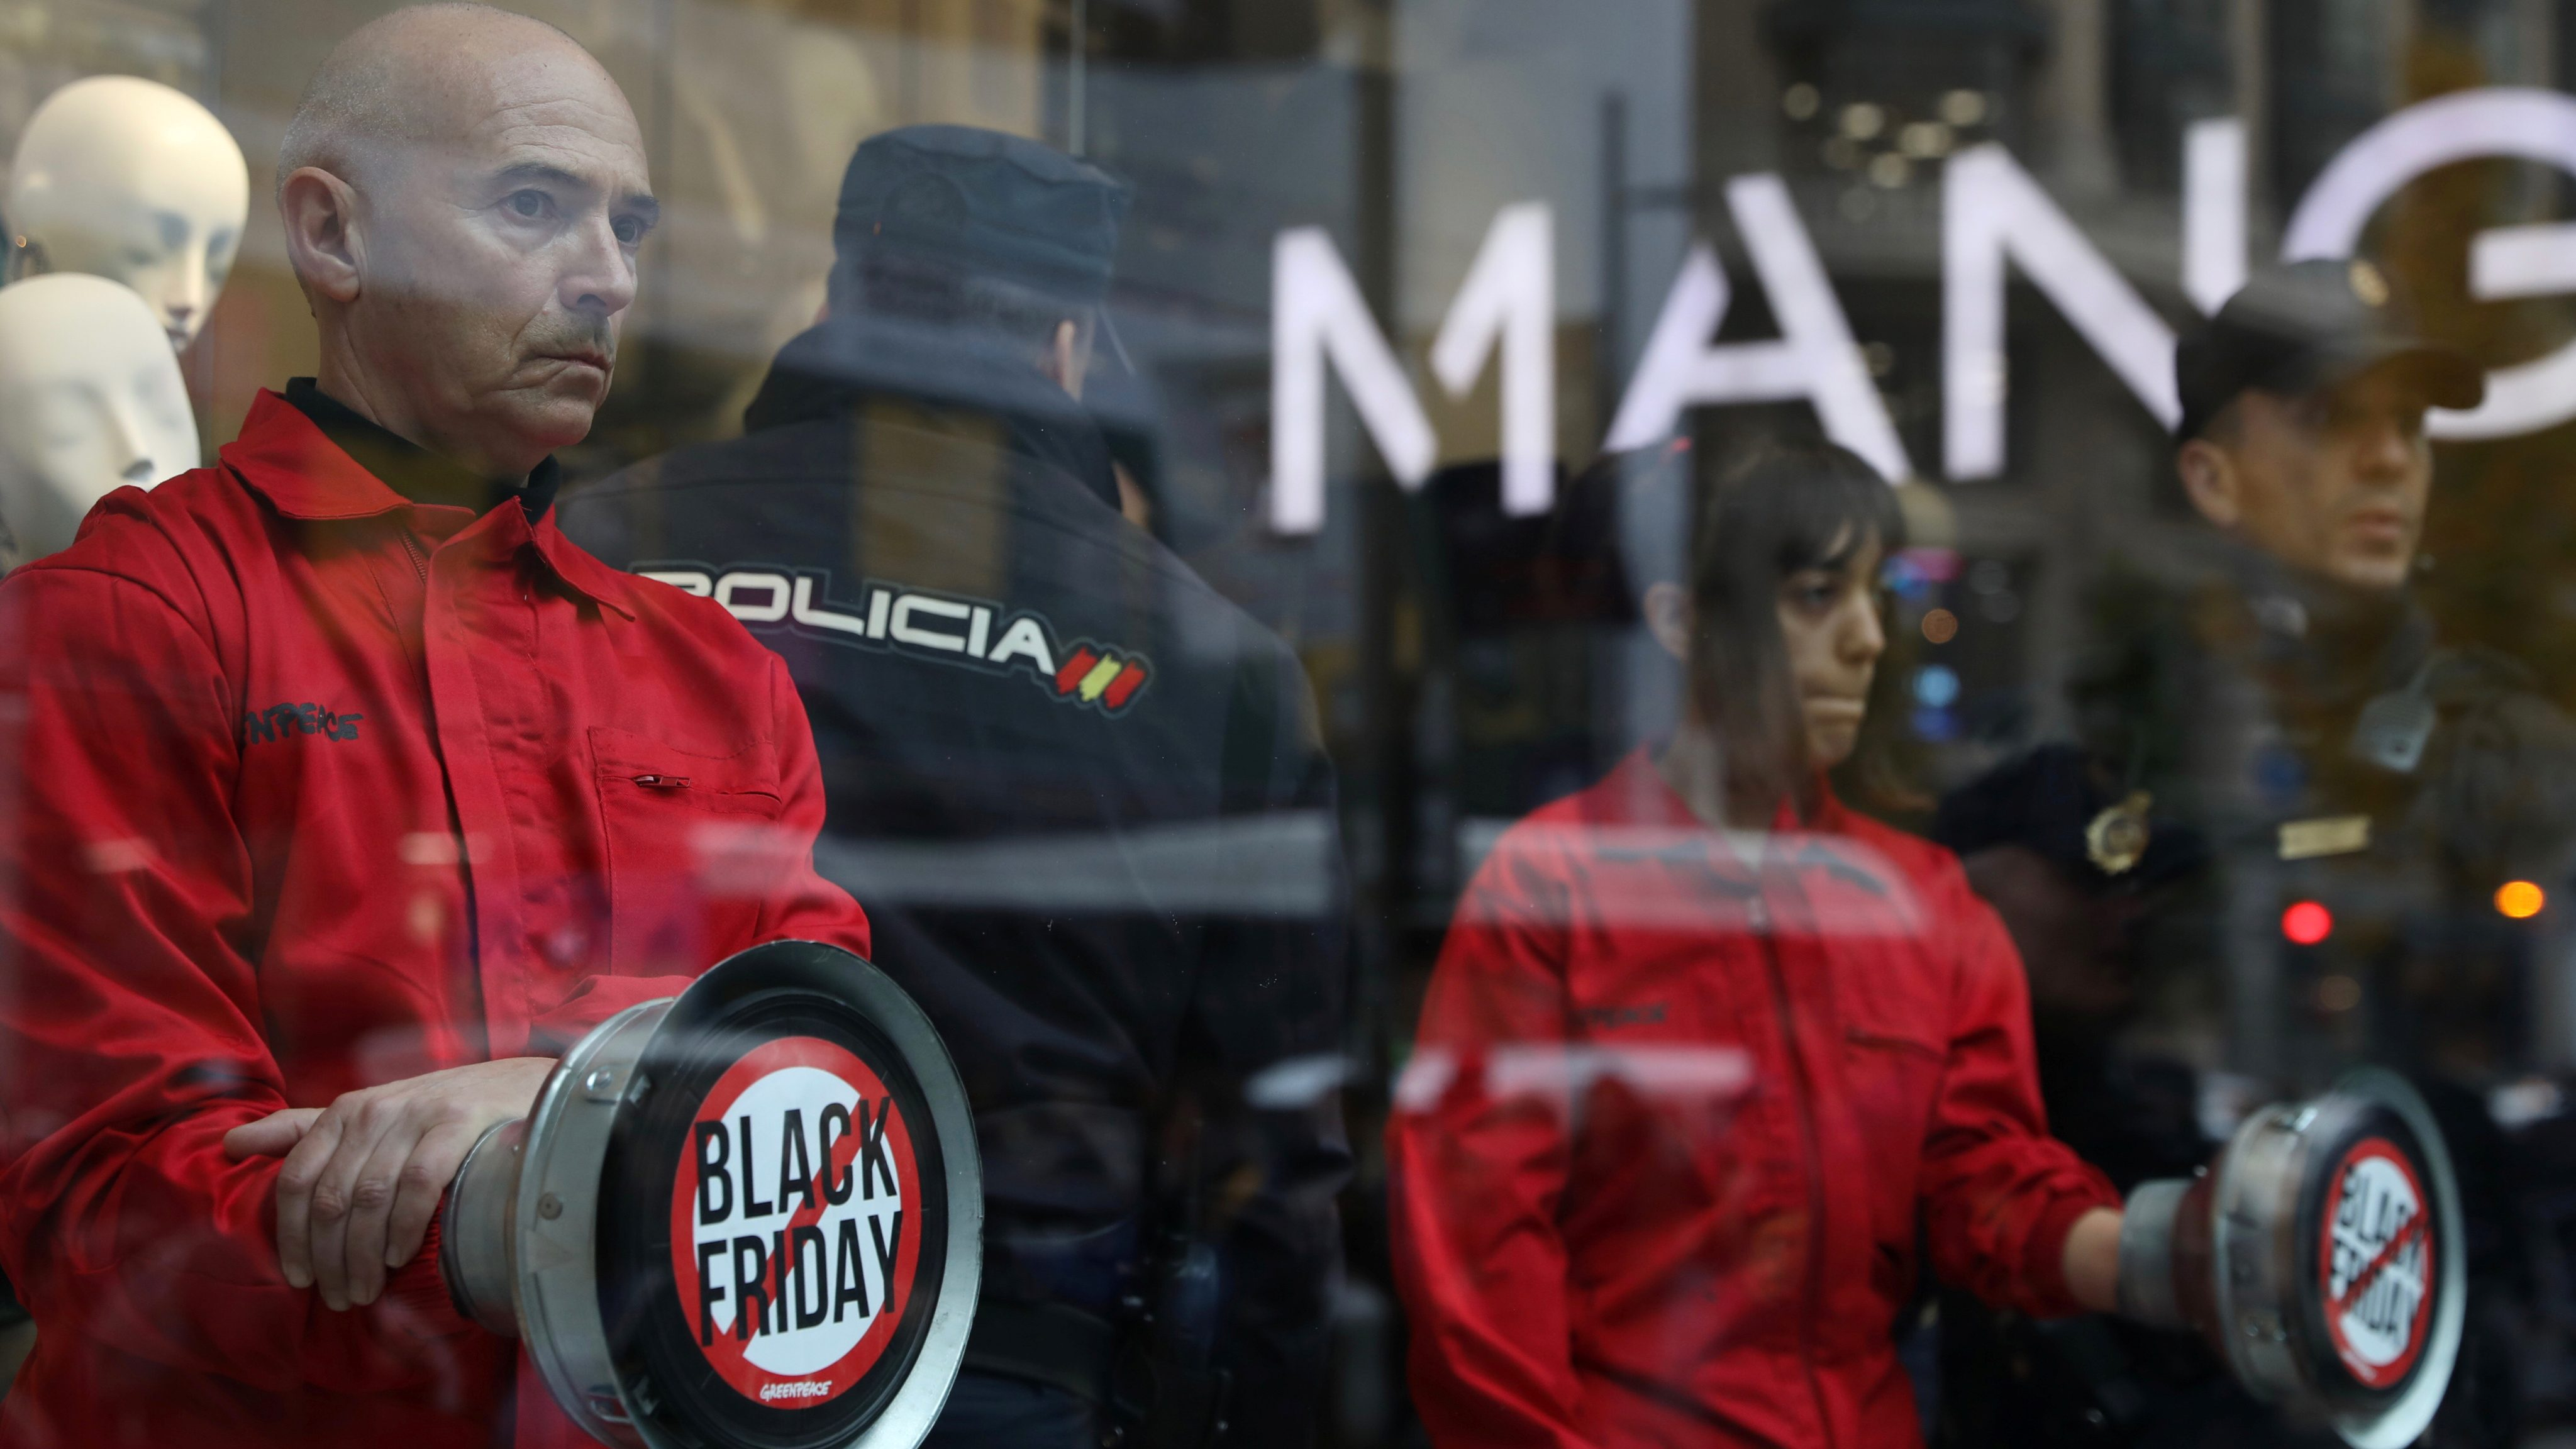 Greenpeace activists protest Black Friday inside a Mango store